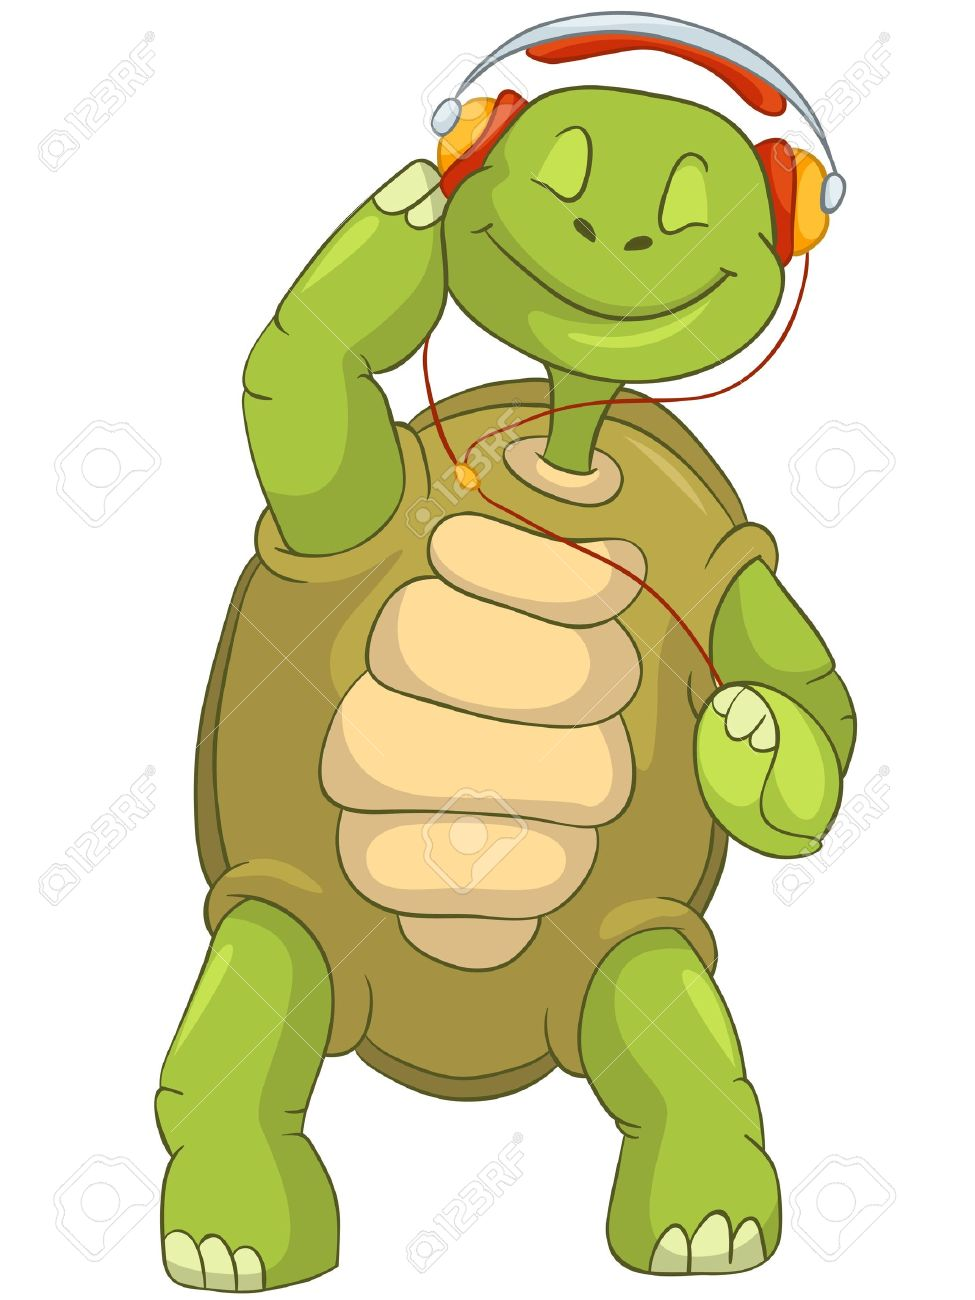 Funny Turtle Listening to Music Stock Vector - 13533785